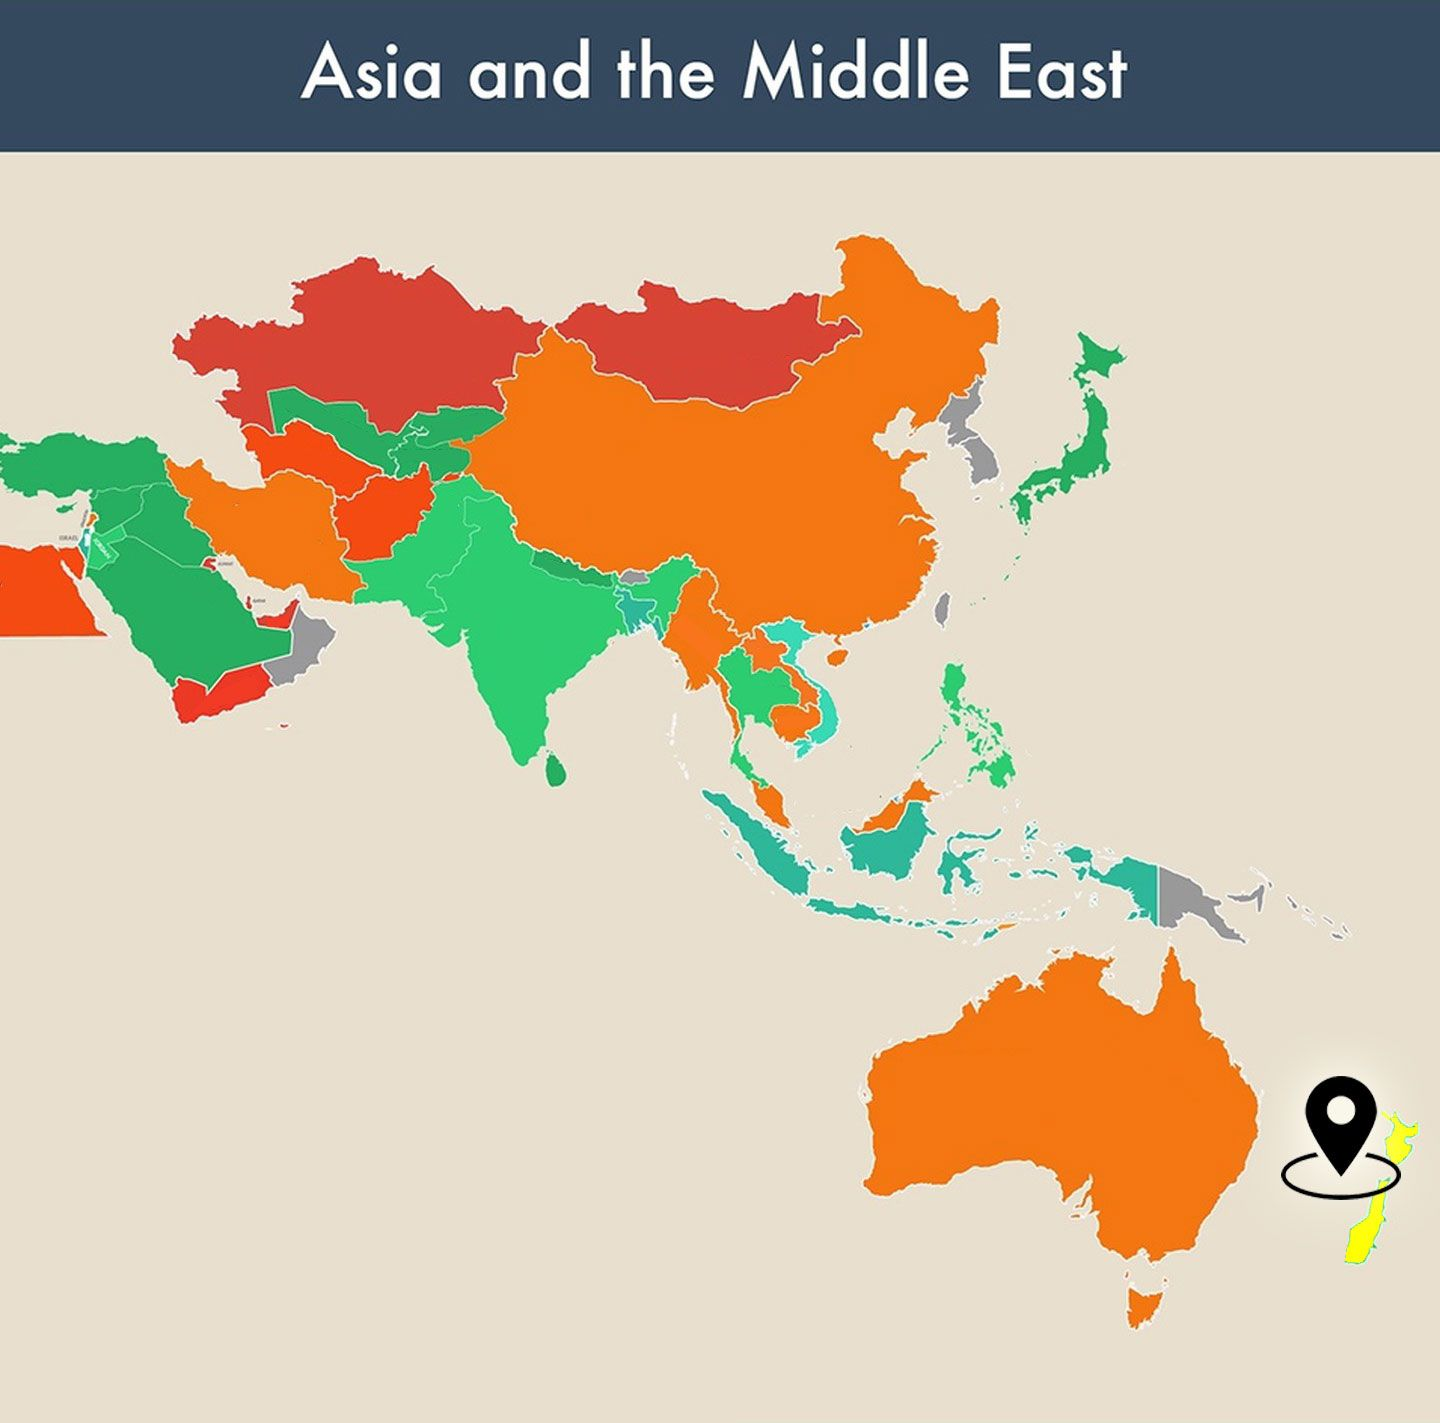 countries of the world empty map - nz new zealand image